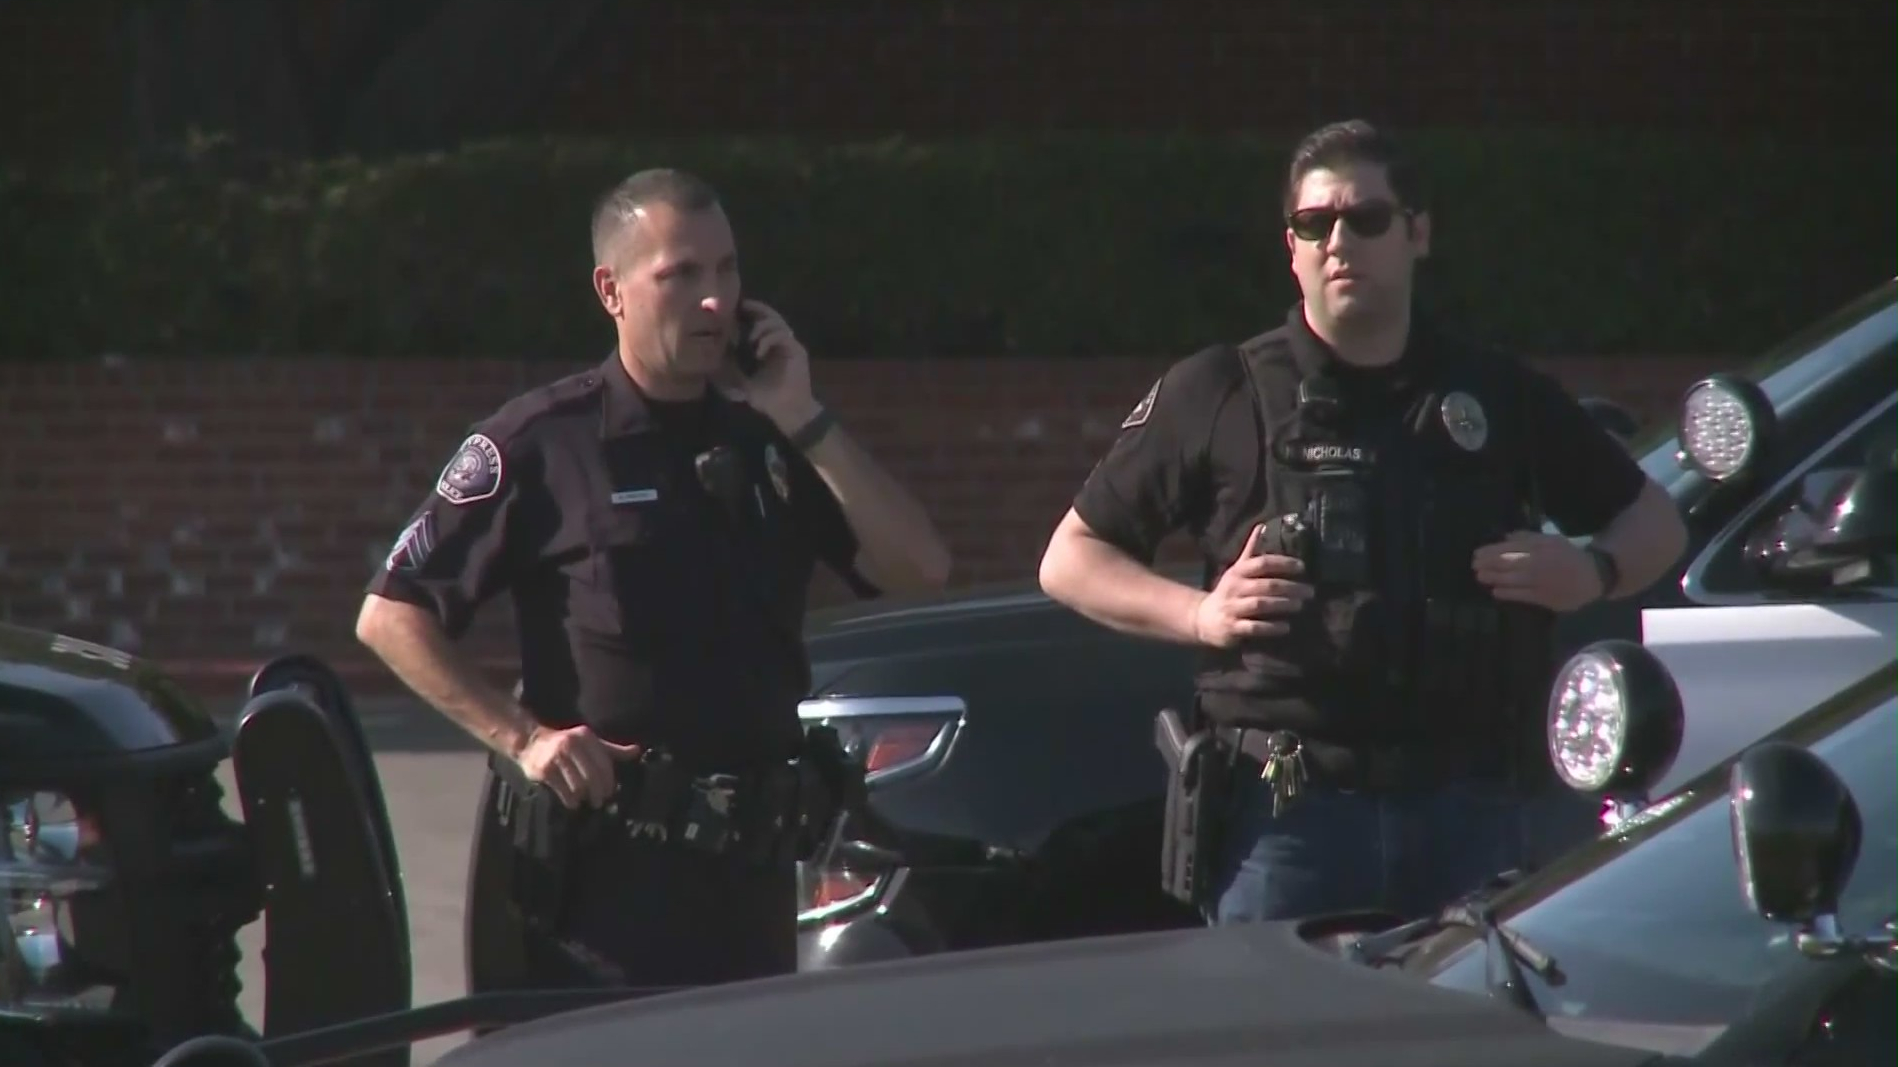 Police respond to a shooting at the Forest Lawn cemetery in Cypress on May 22, 2020. (KTLA)